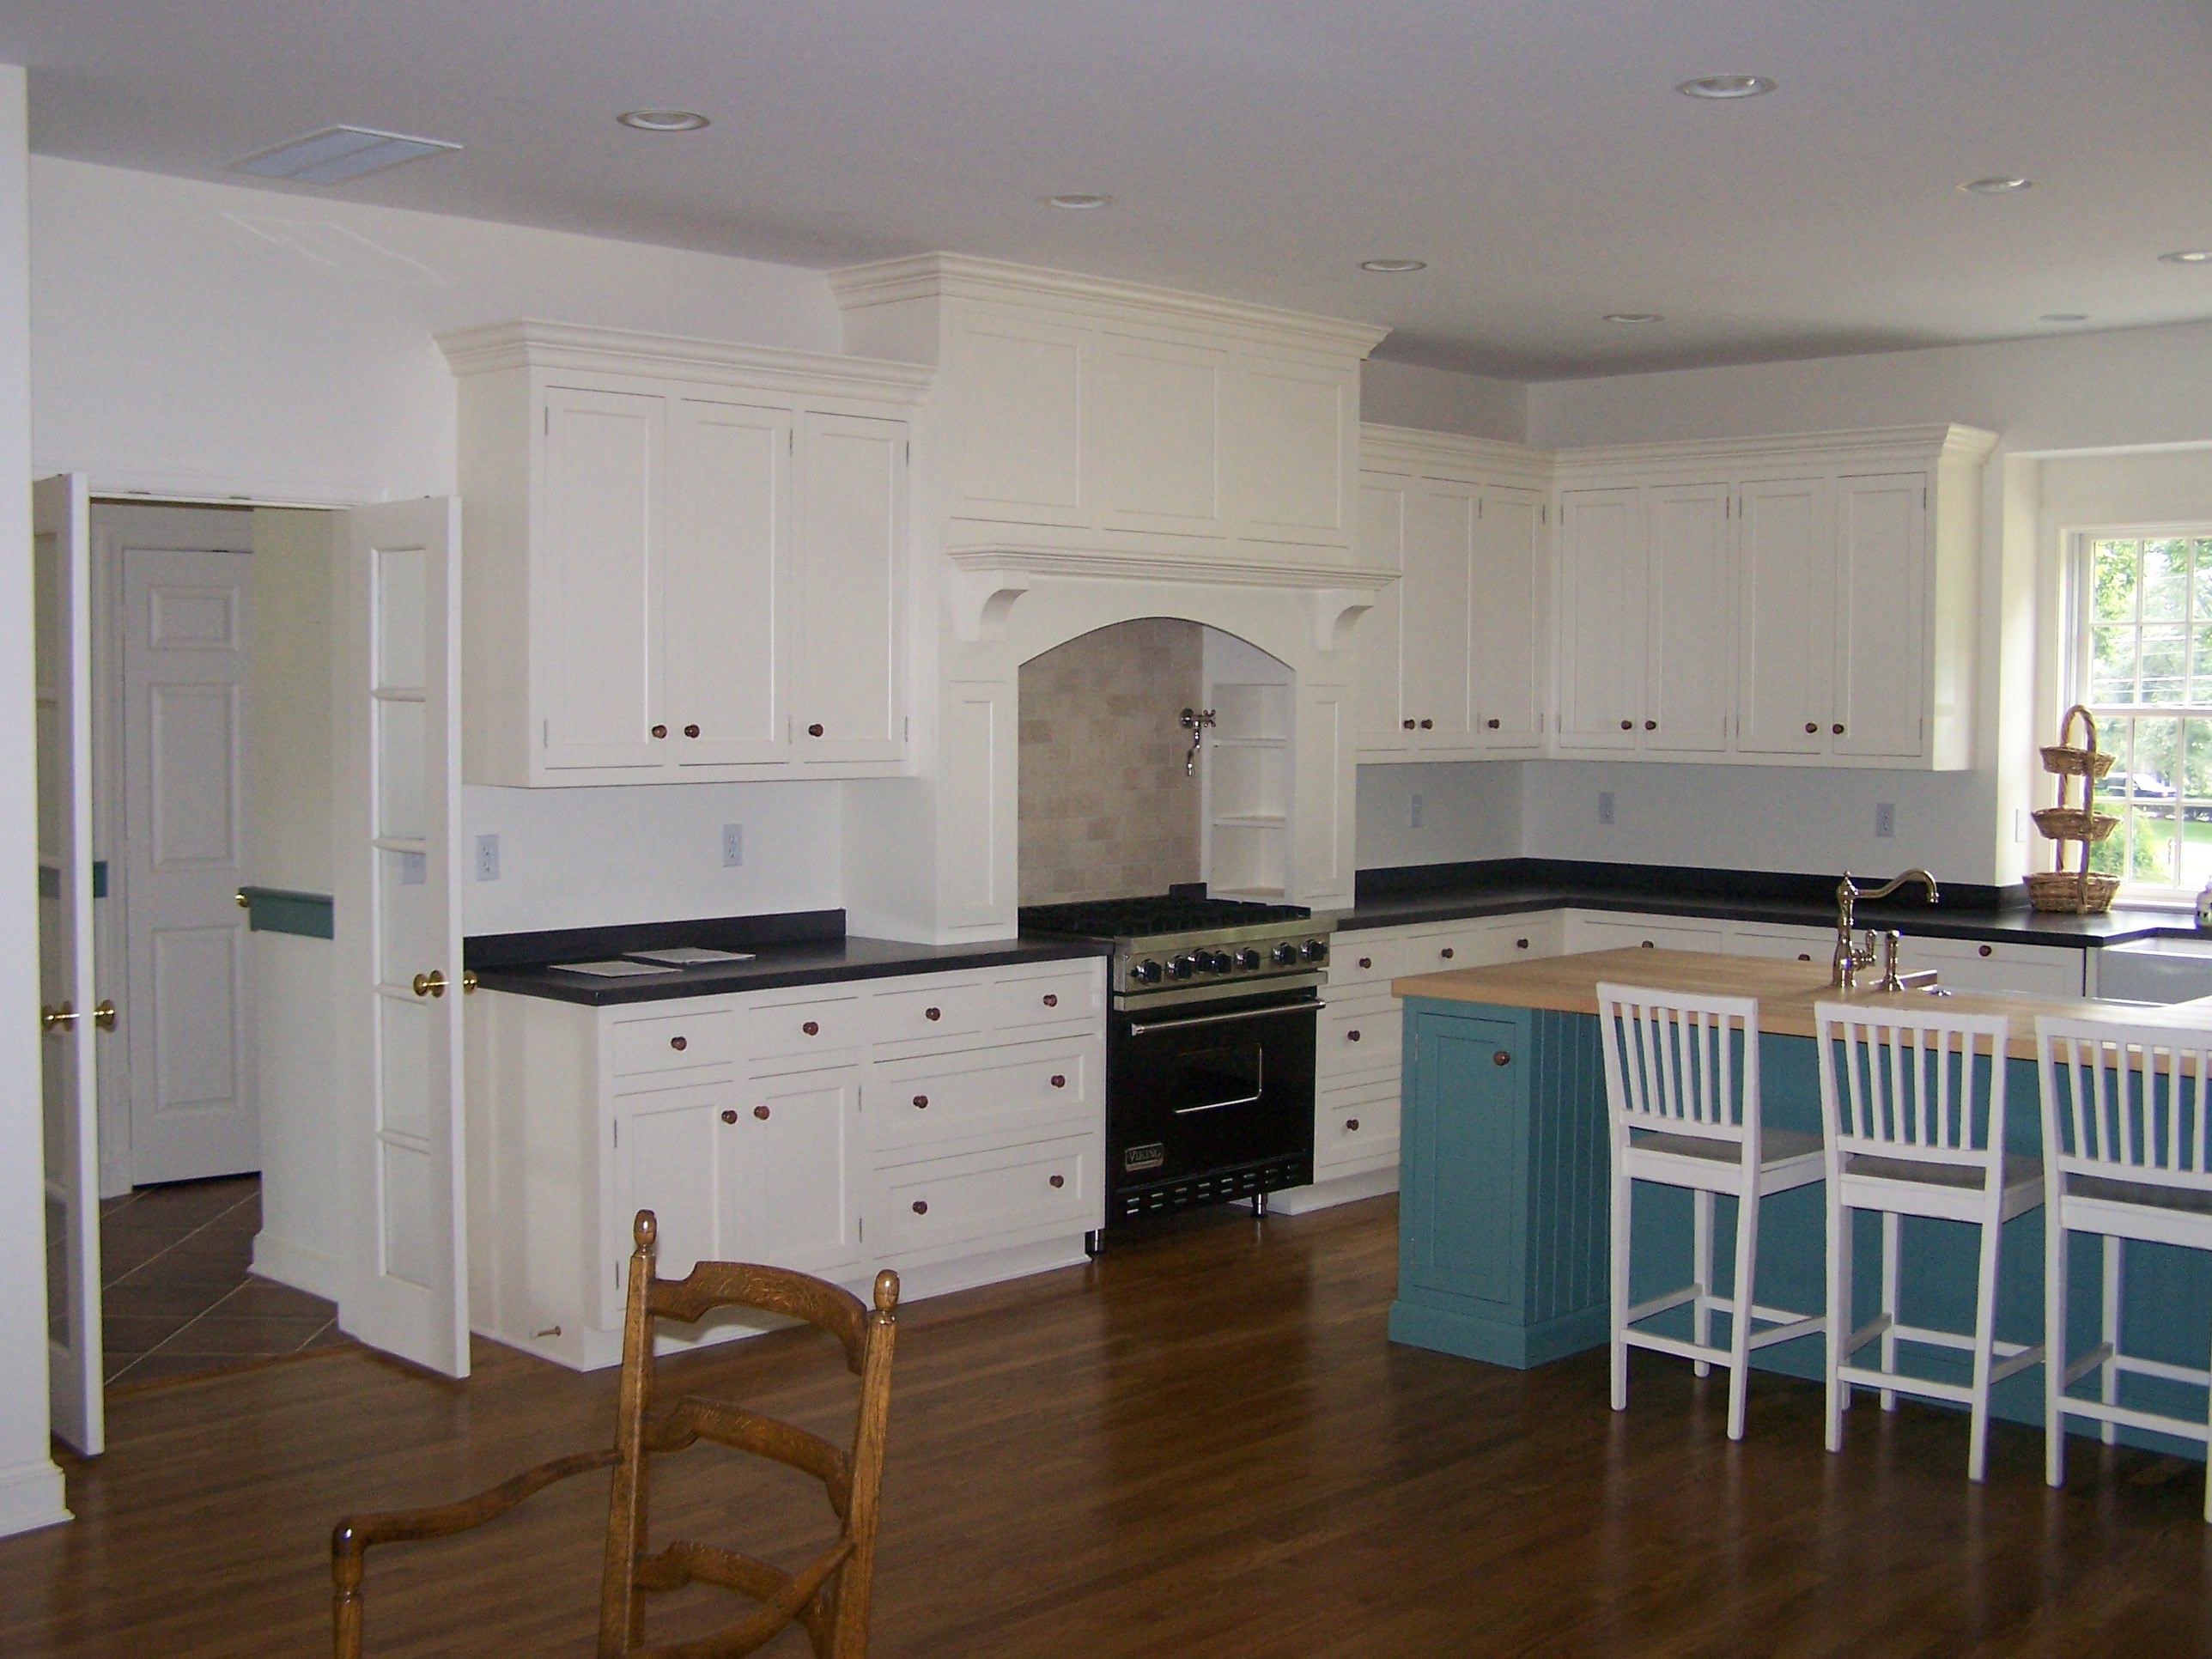 addition, remodel, and renovation after B